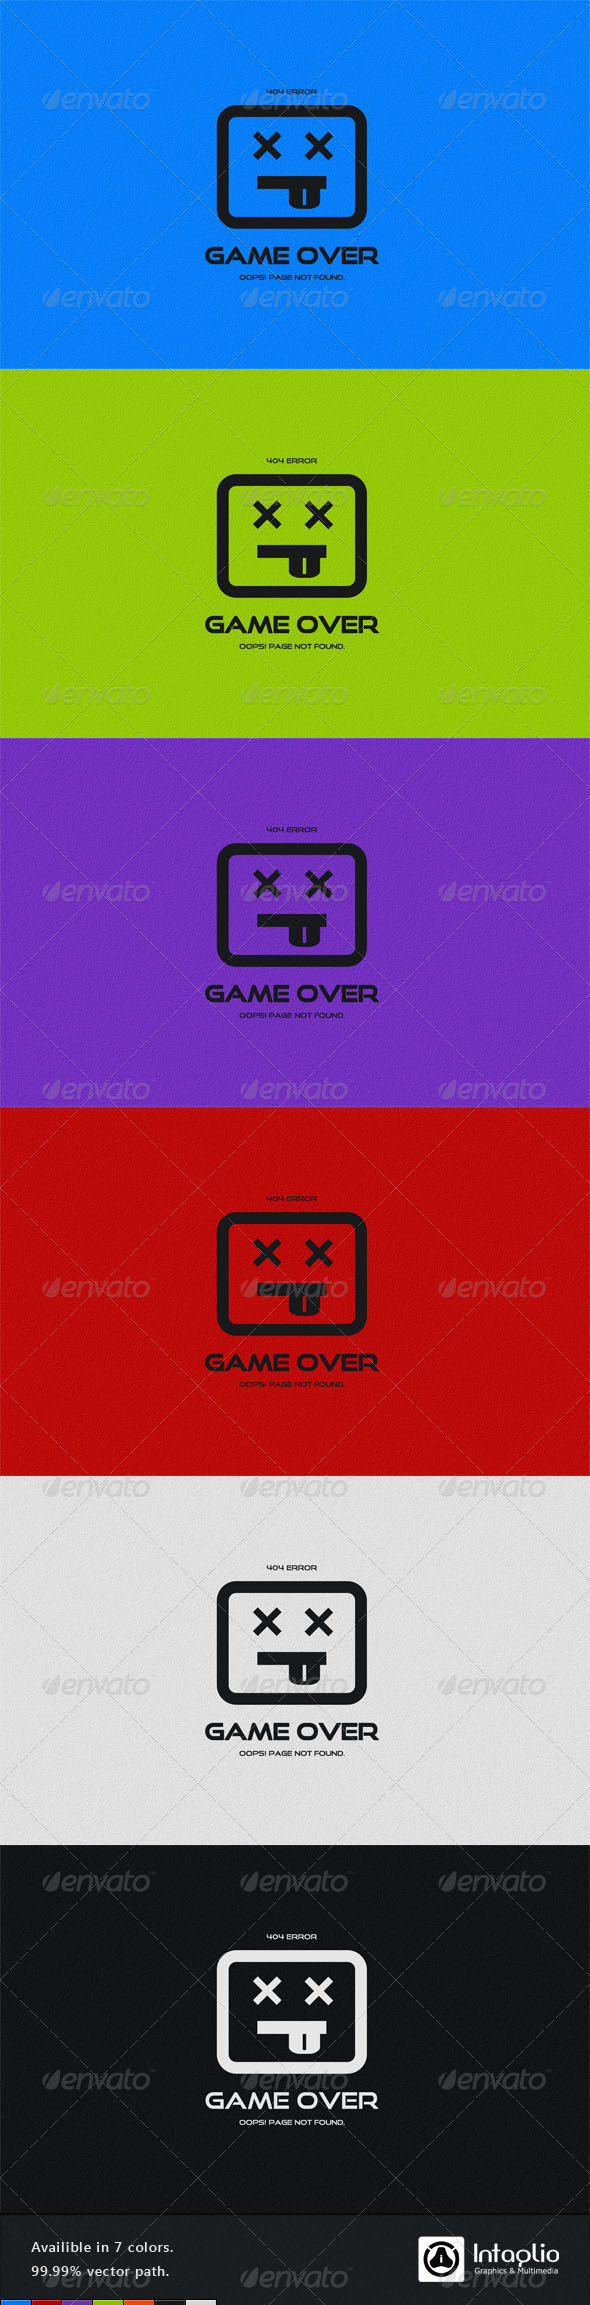 Game Over Error Page by AddtoFavorites (layered 404 page template)